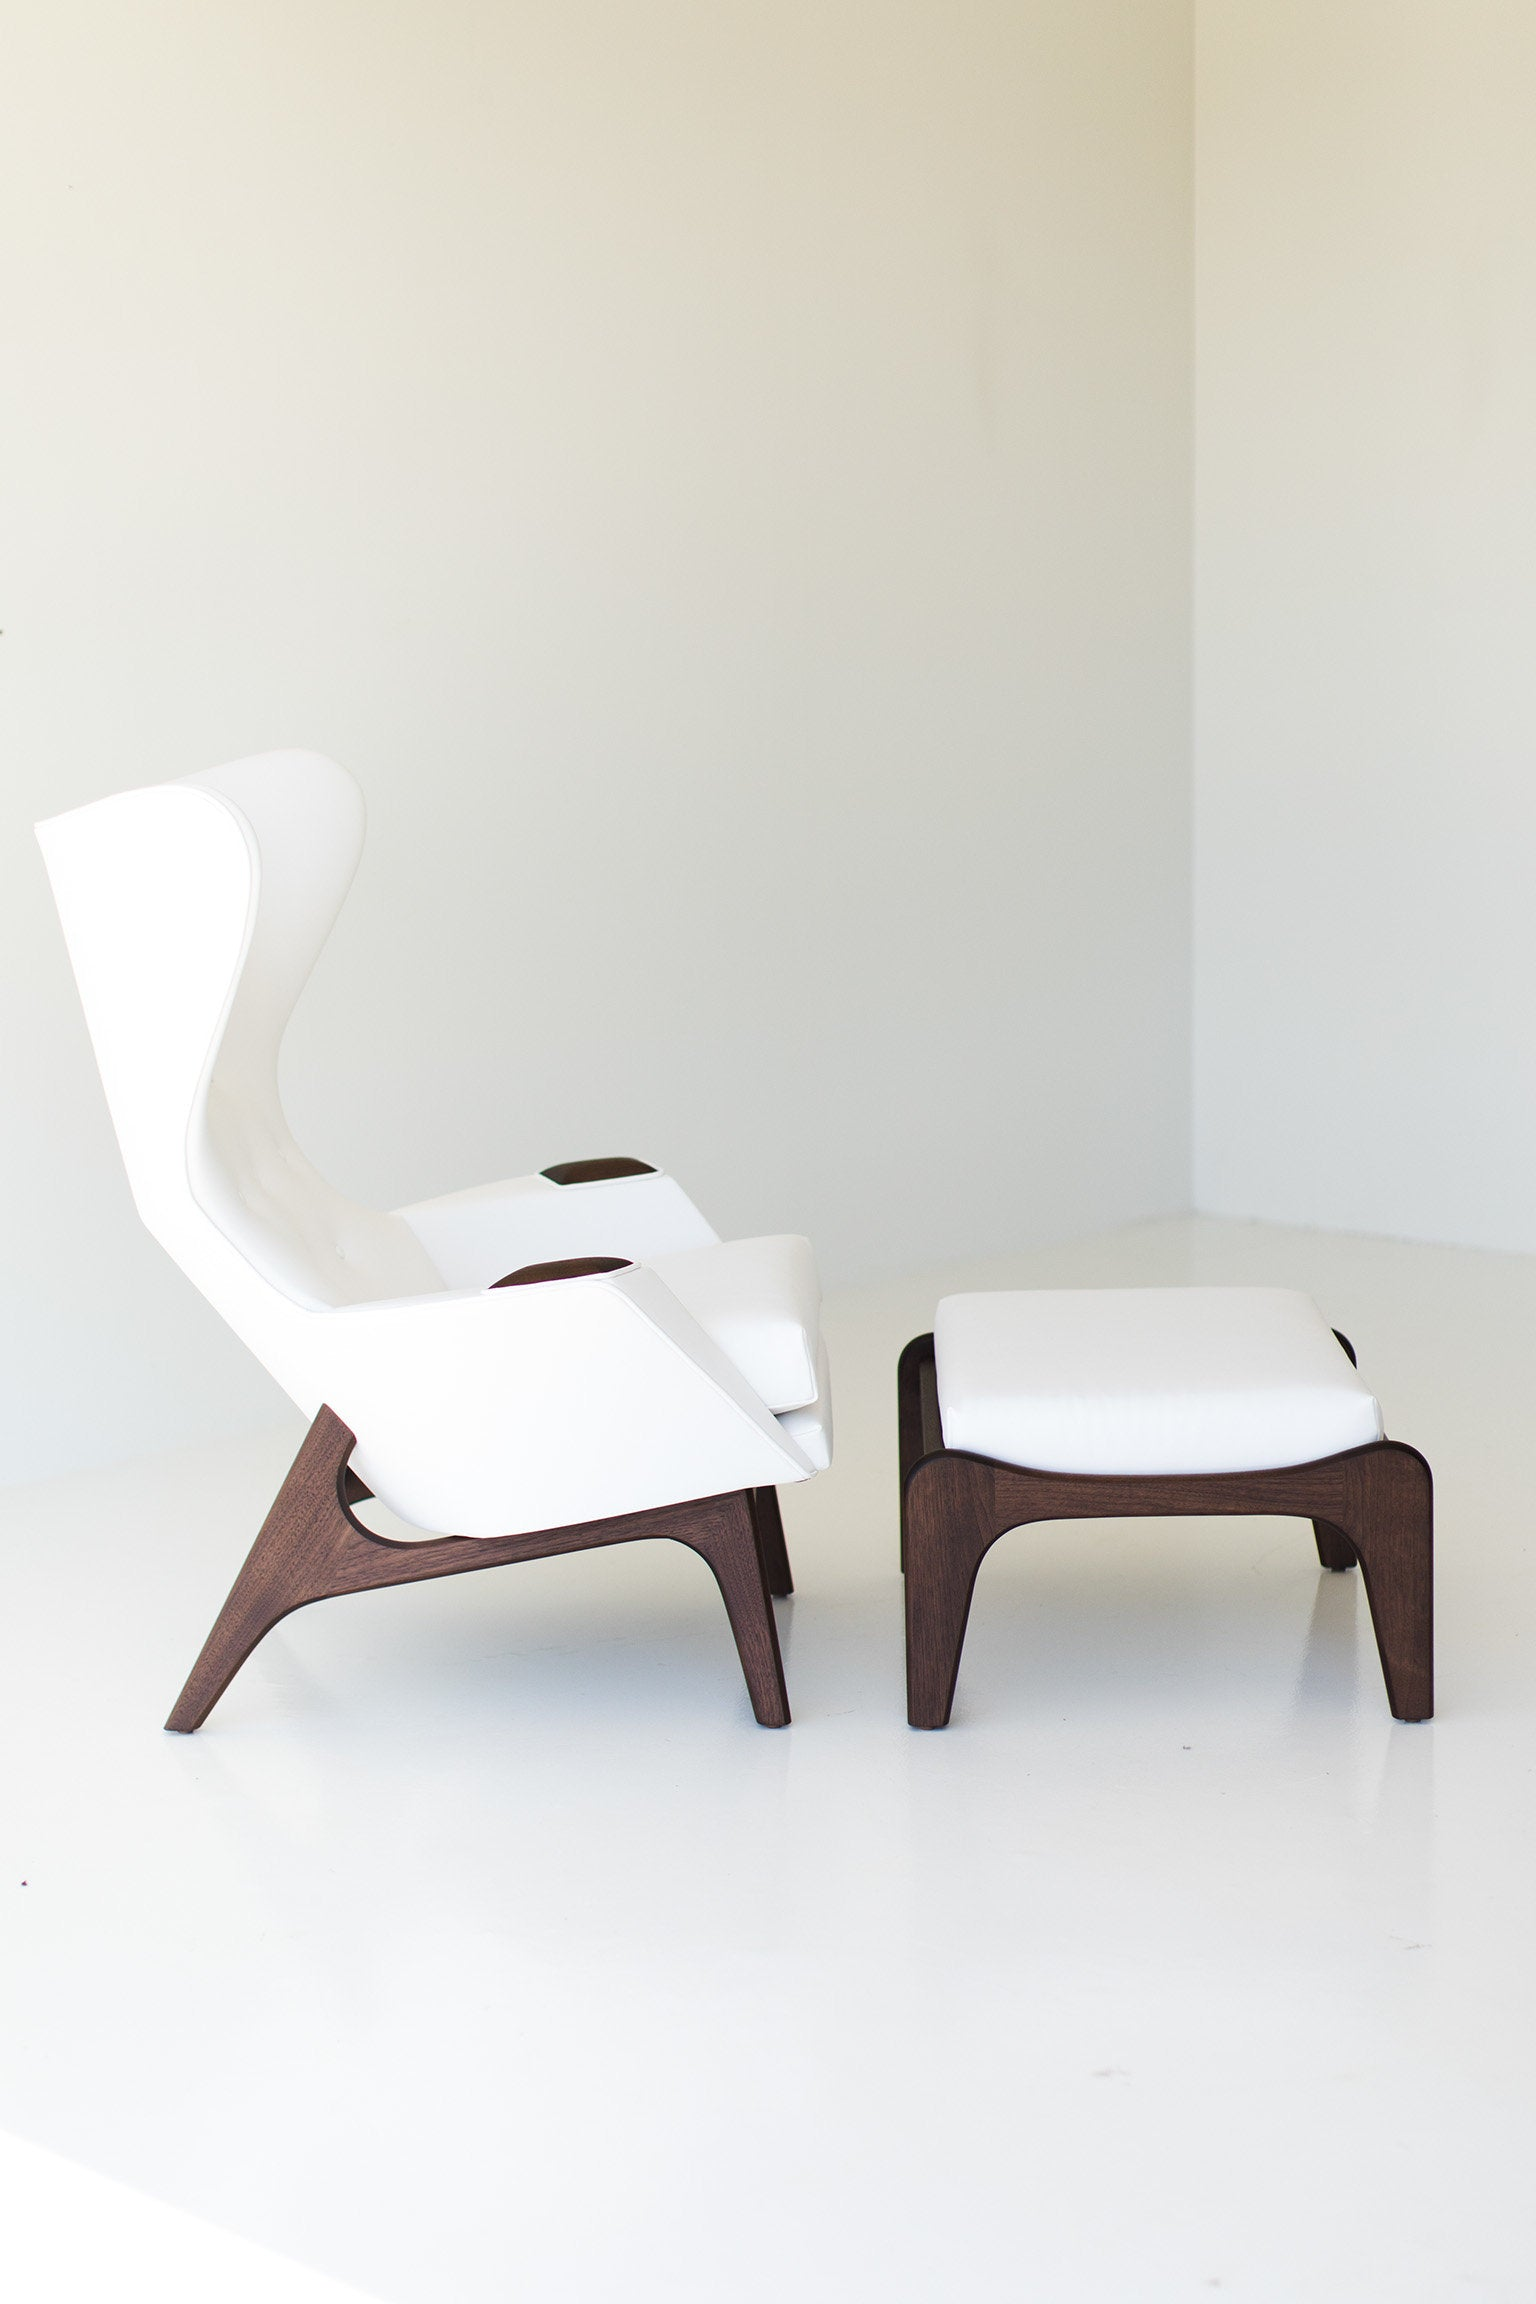 I07A8870-white-chair-and-ottoman-01